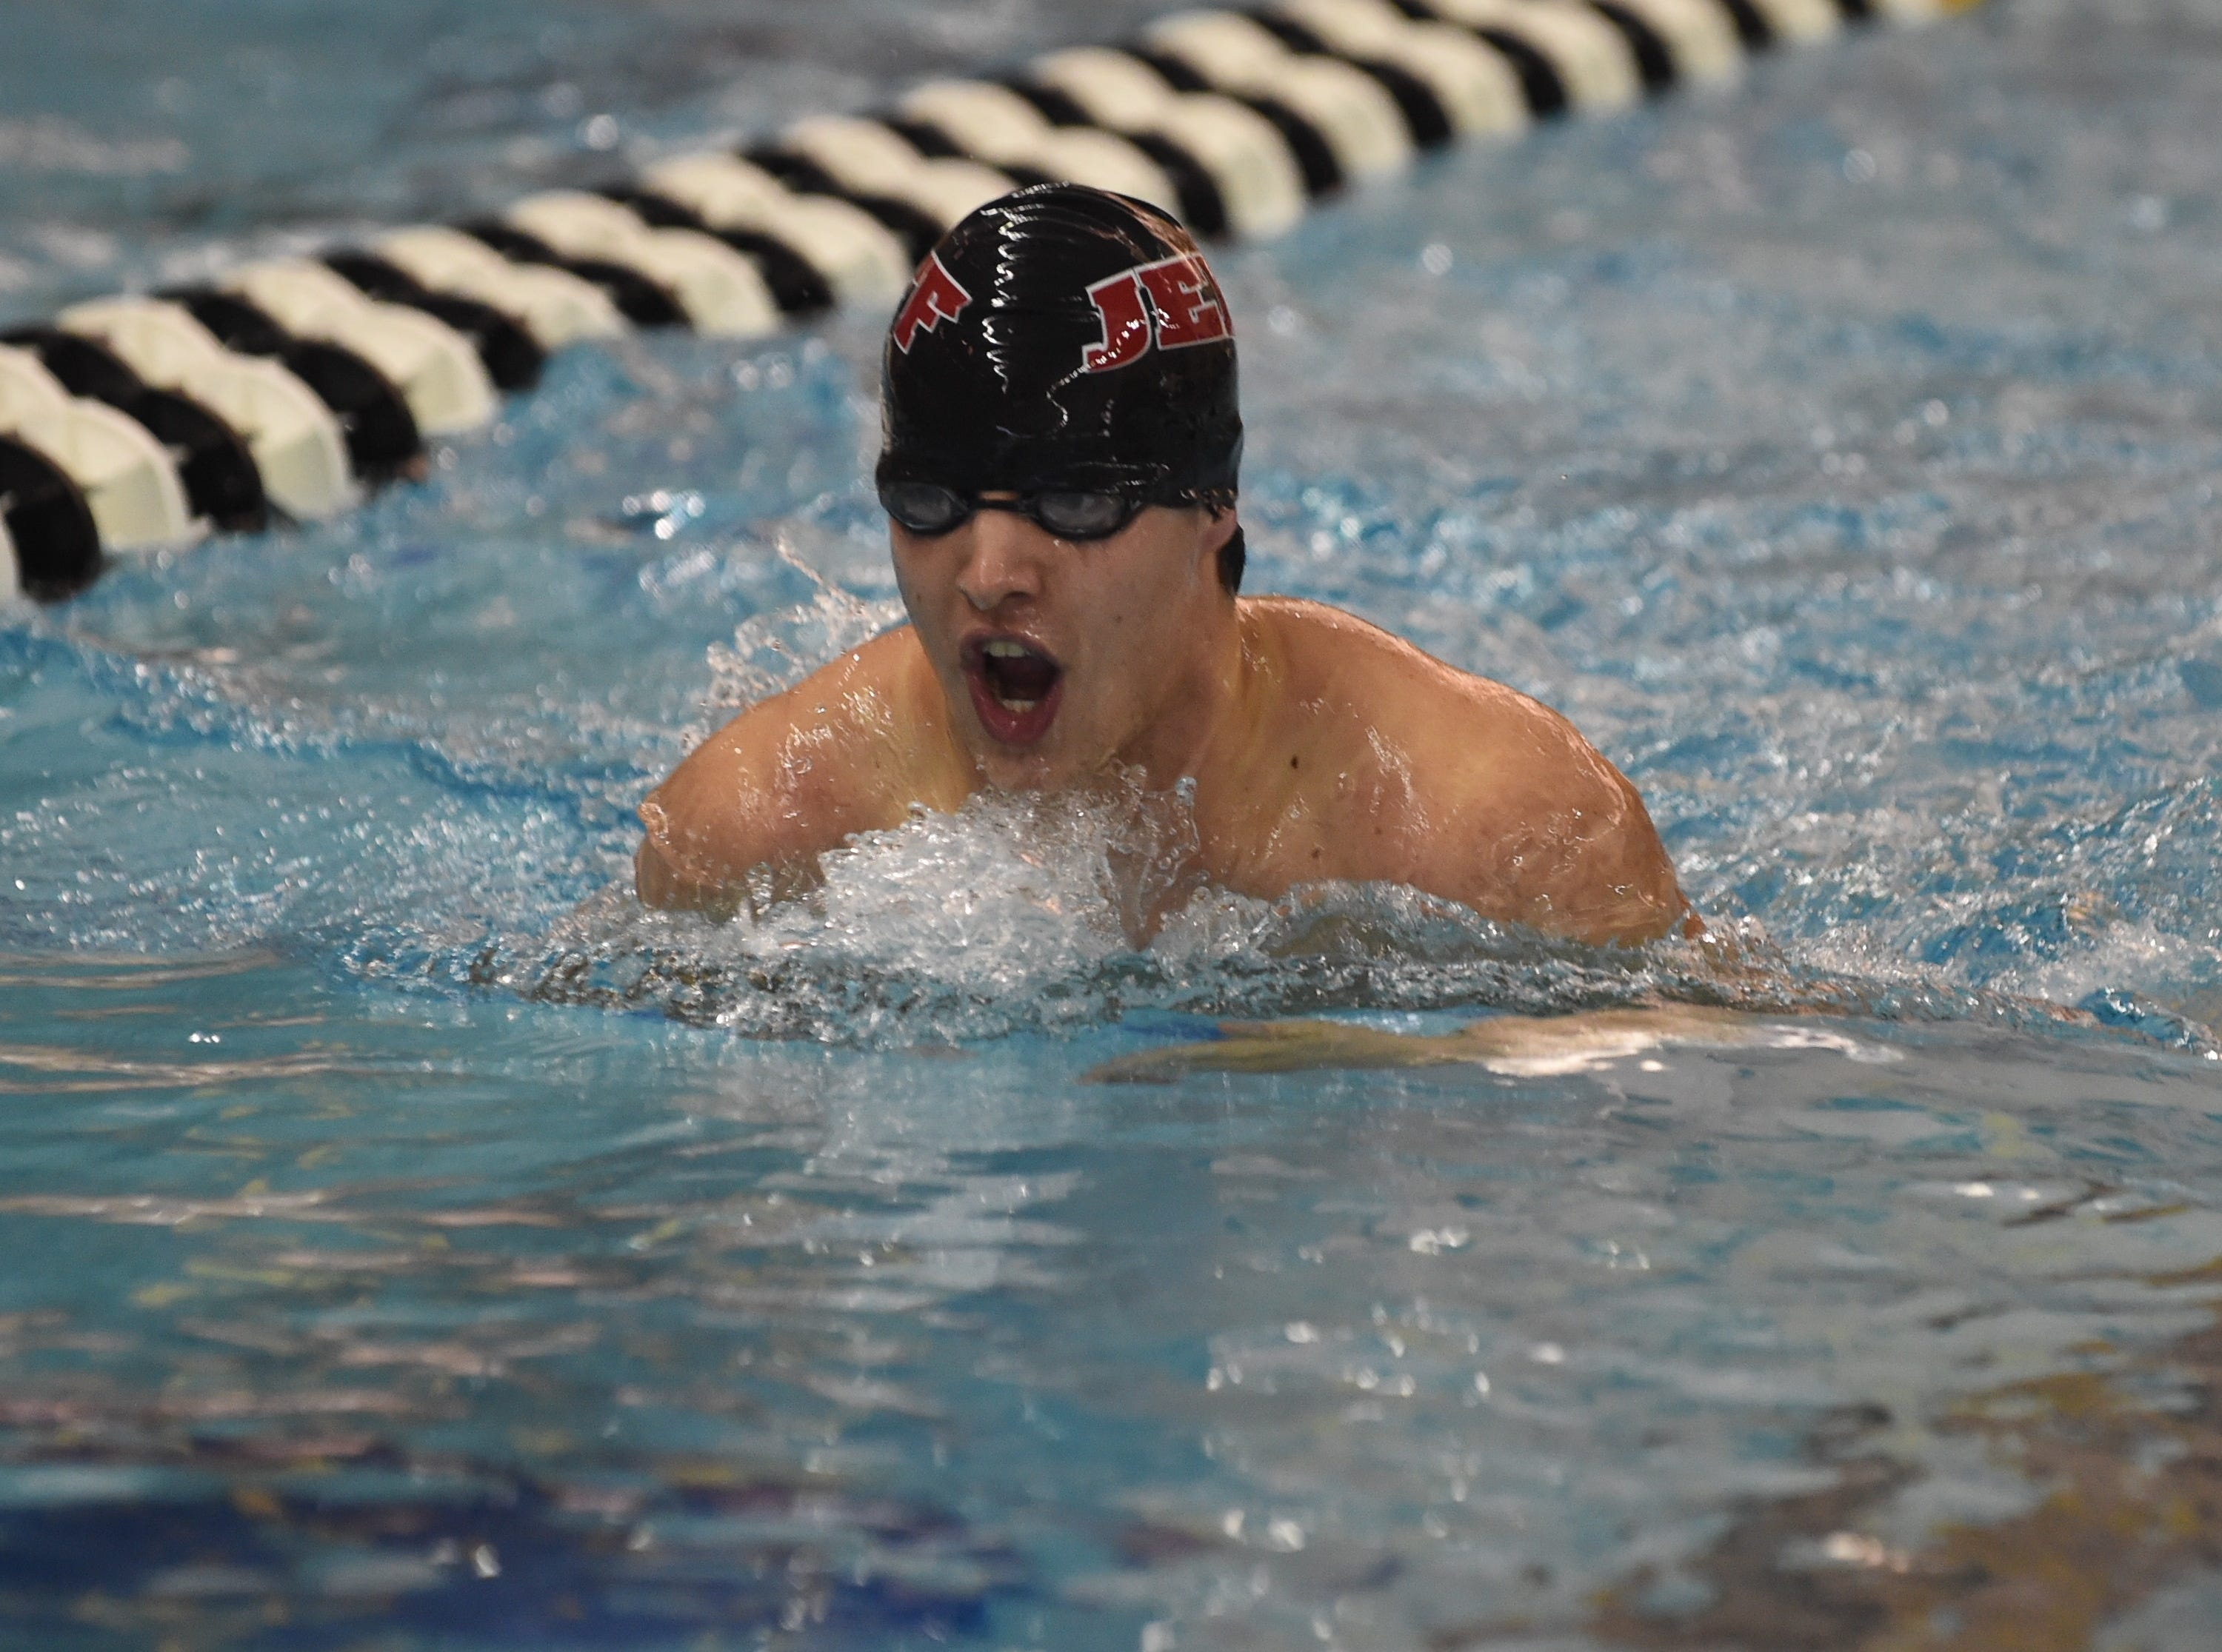 Images from Saturday's North Central Conference Swimming and Diving Championships at Purdue. Cole Martin.